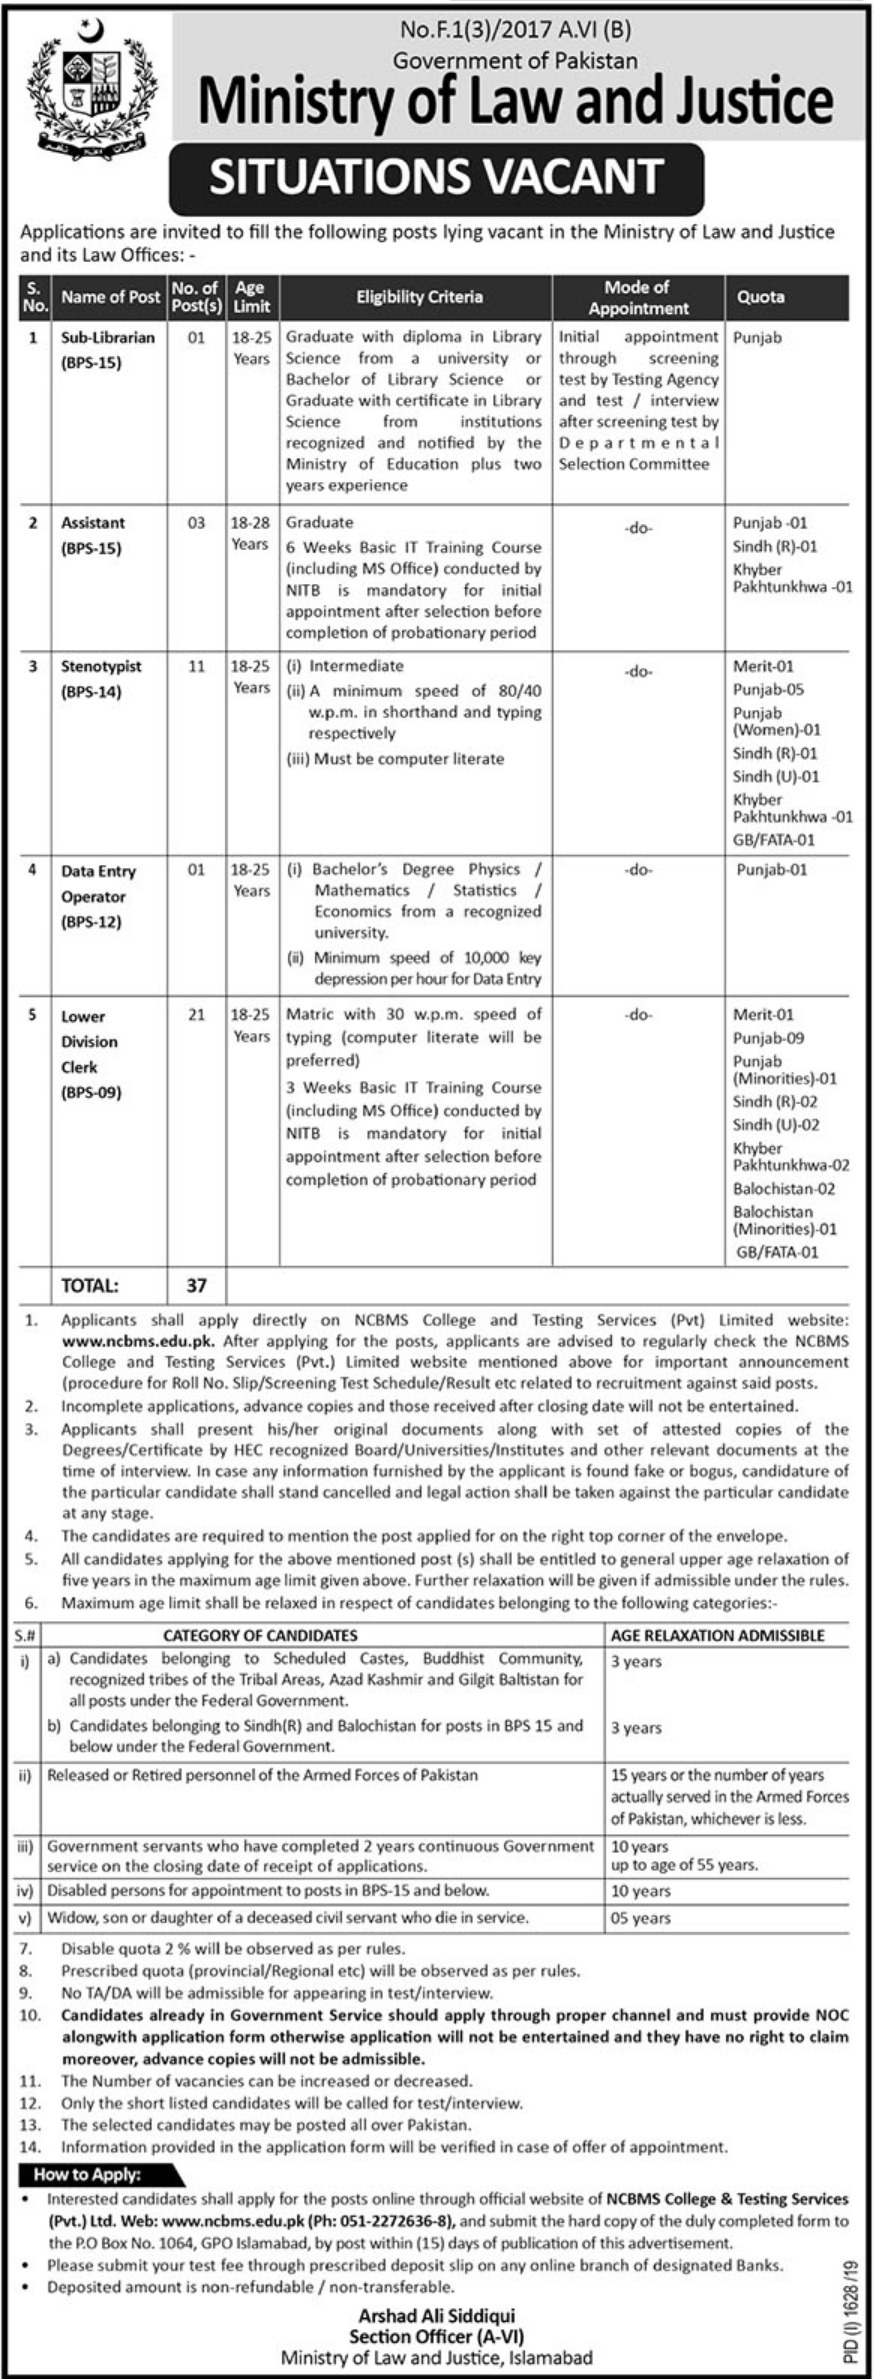 Ministry of Law & Justice Jobs 2019 Pakistan